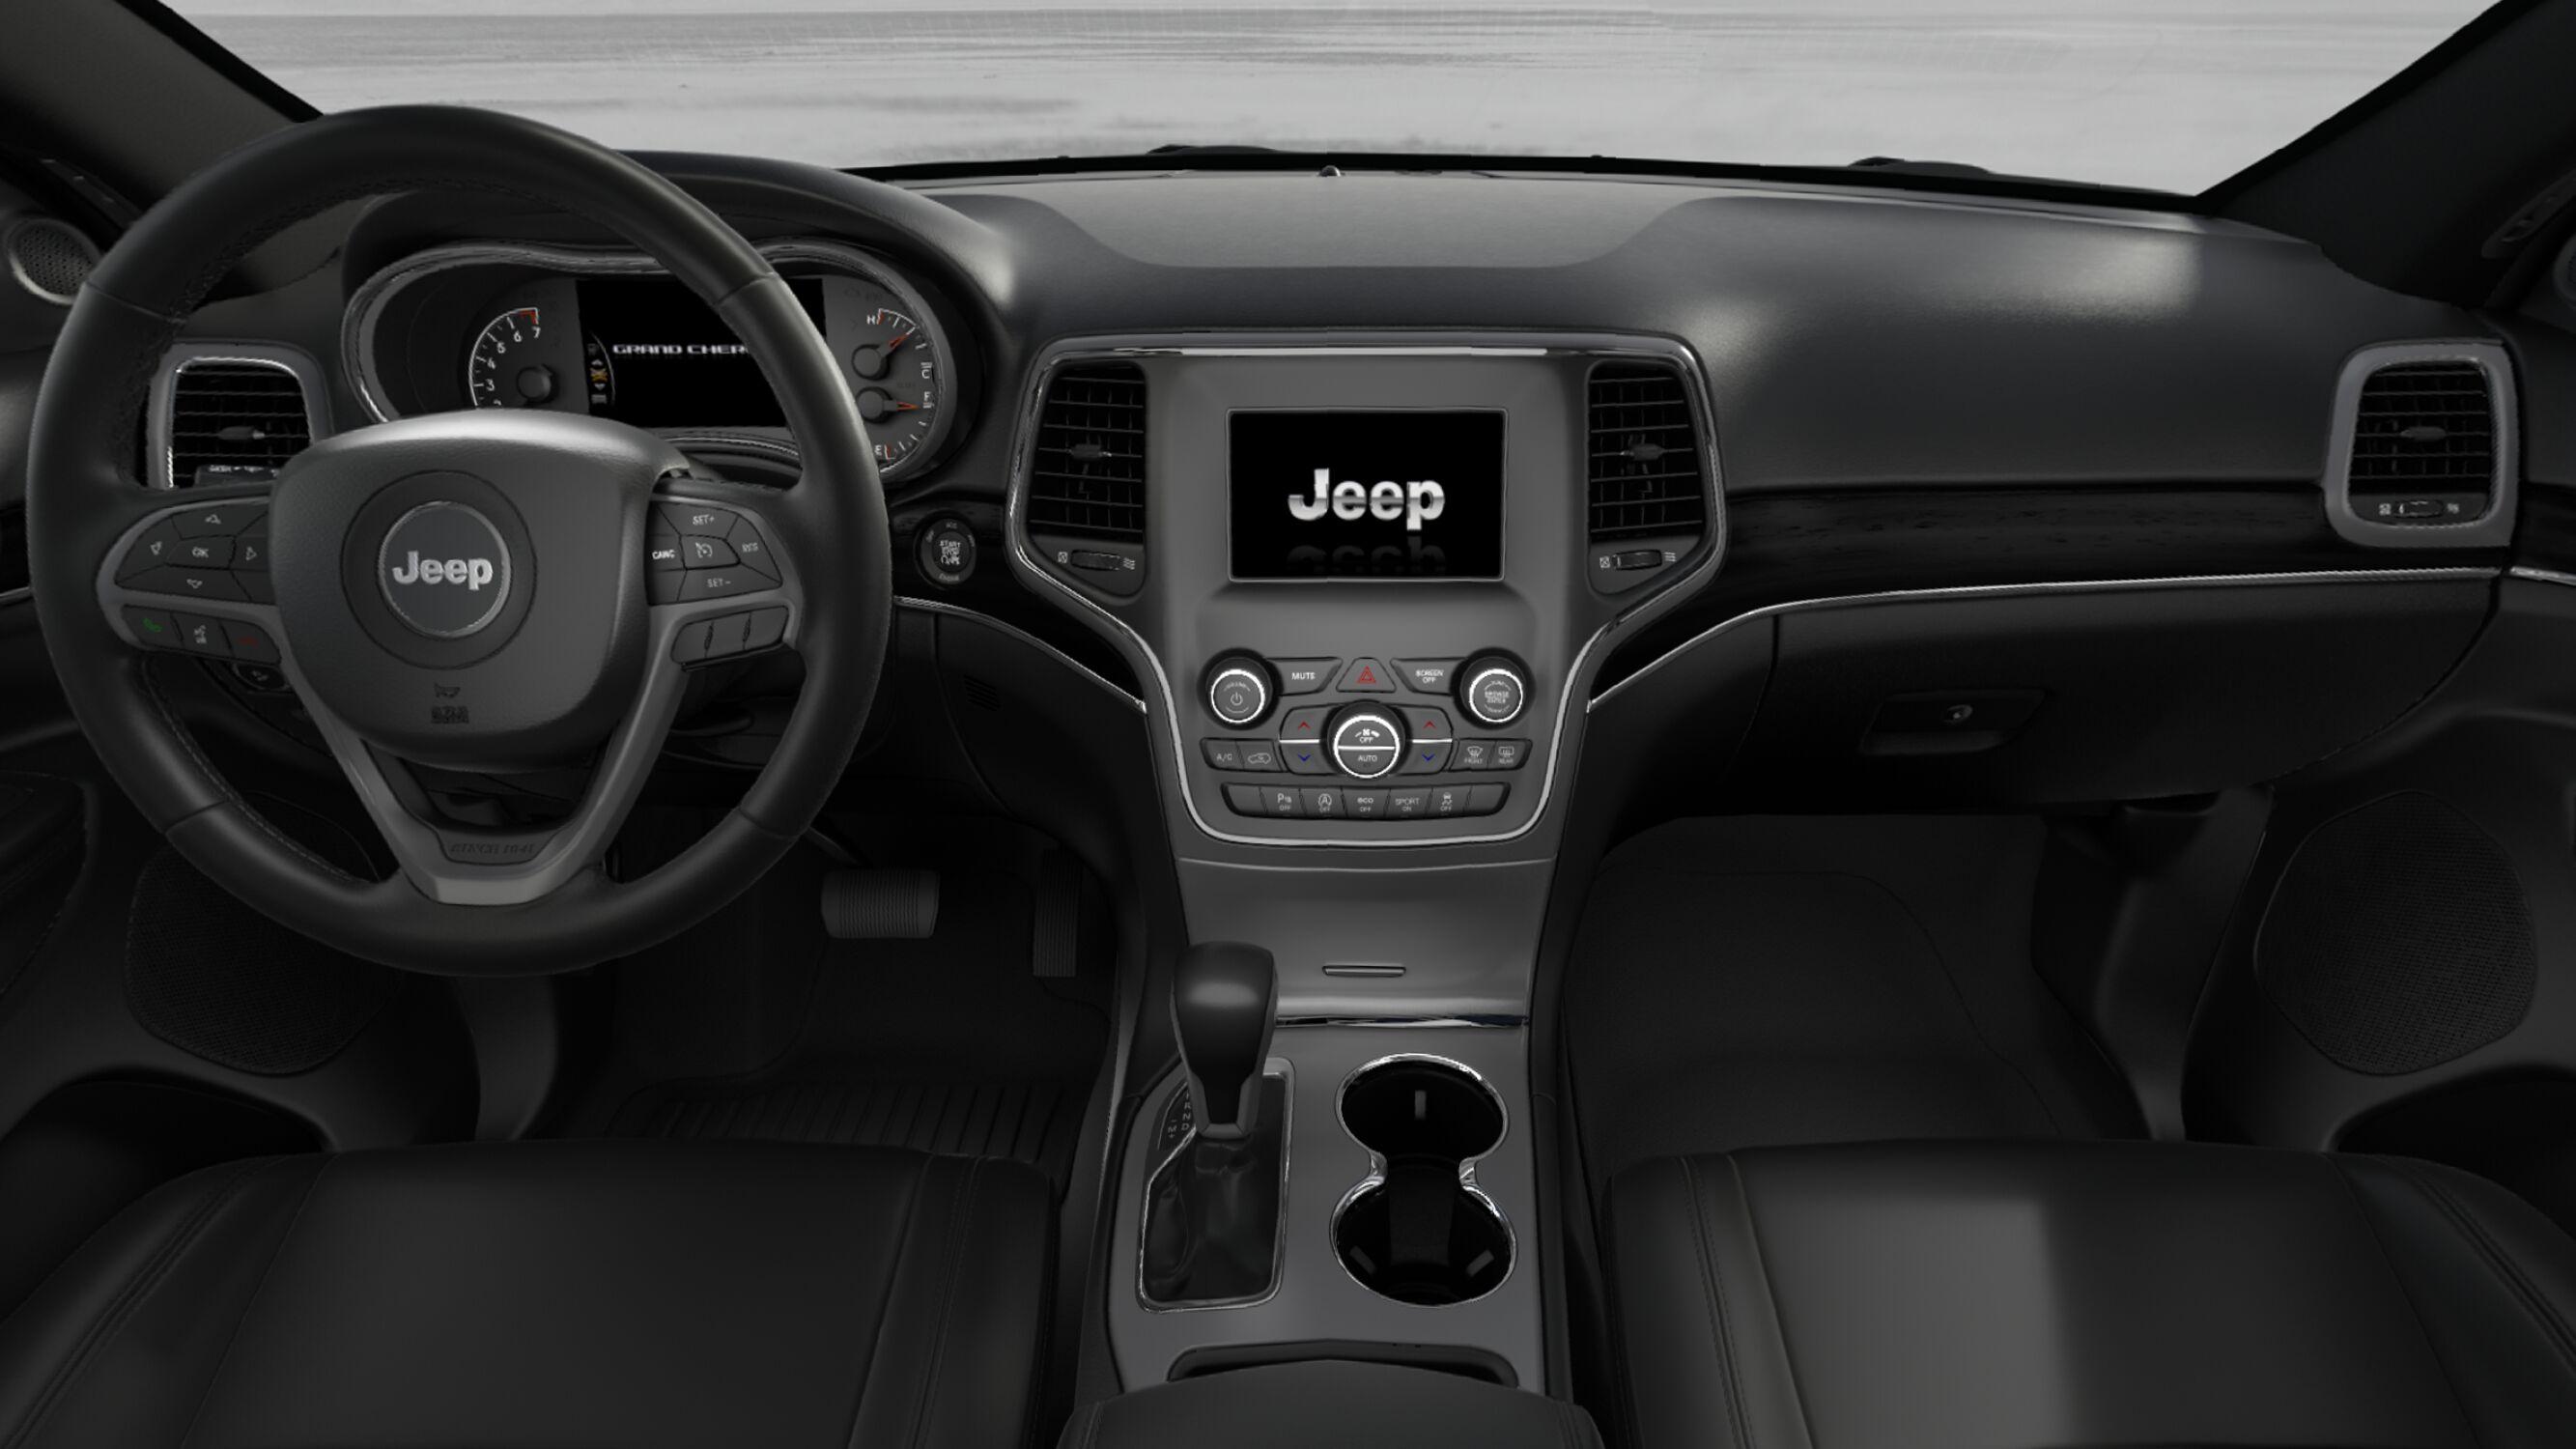 2018 Jeep Grand Chreokee Limited Front Interior Steering Wheel and Dash